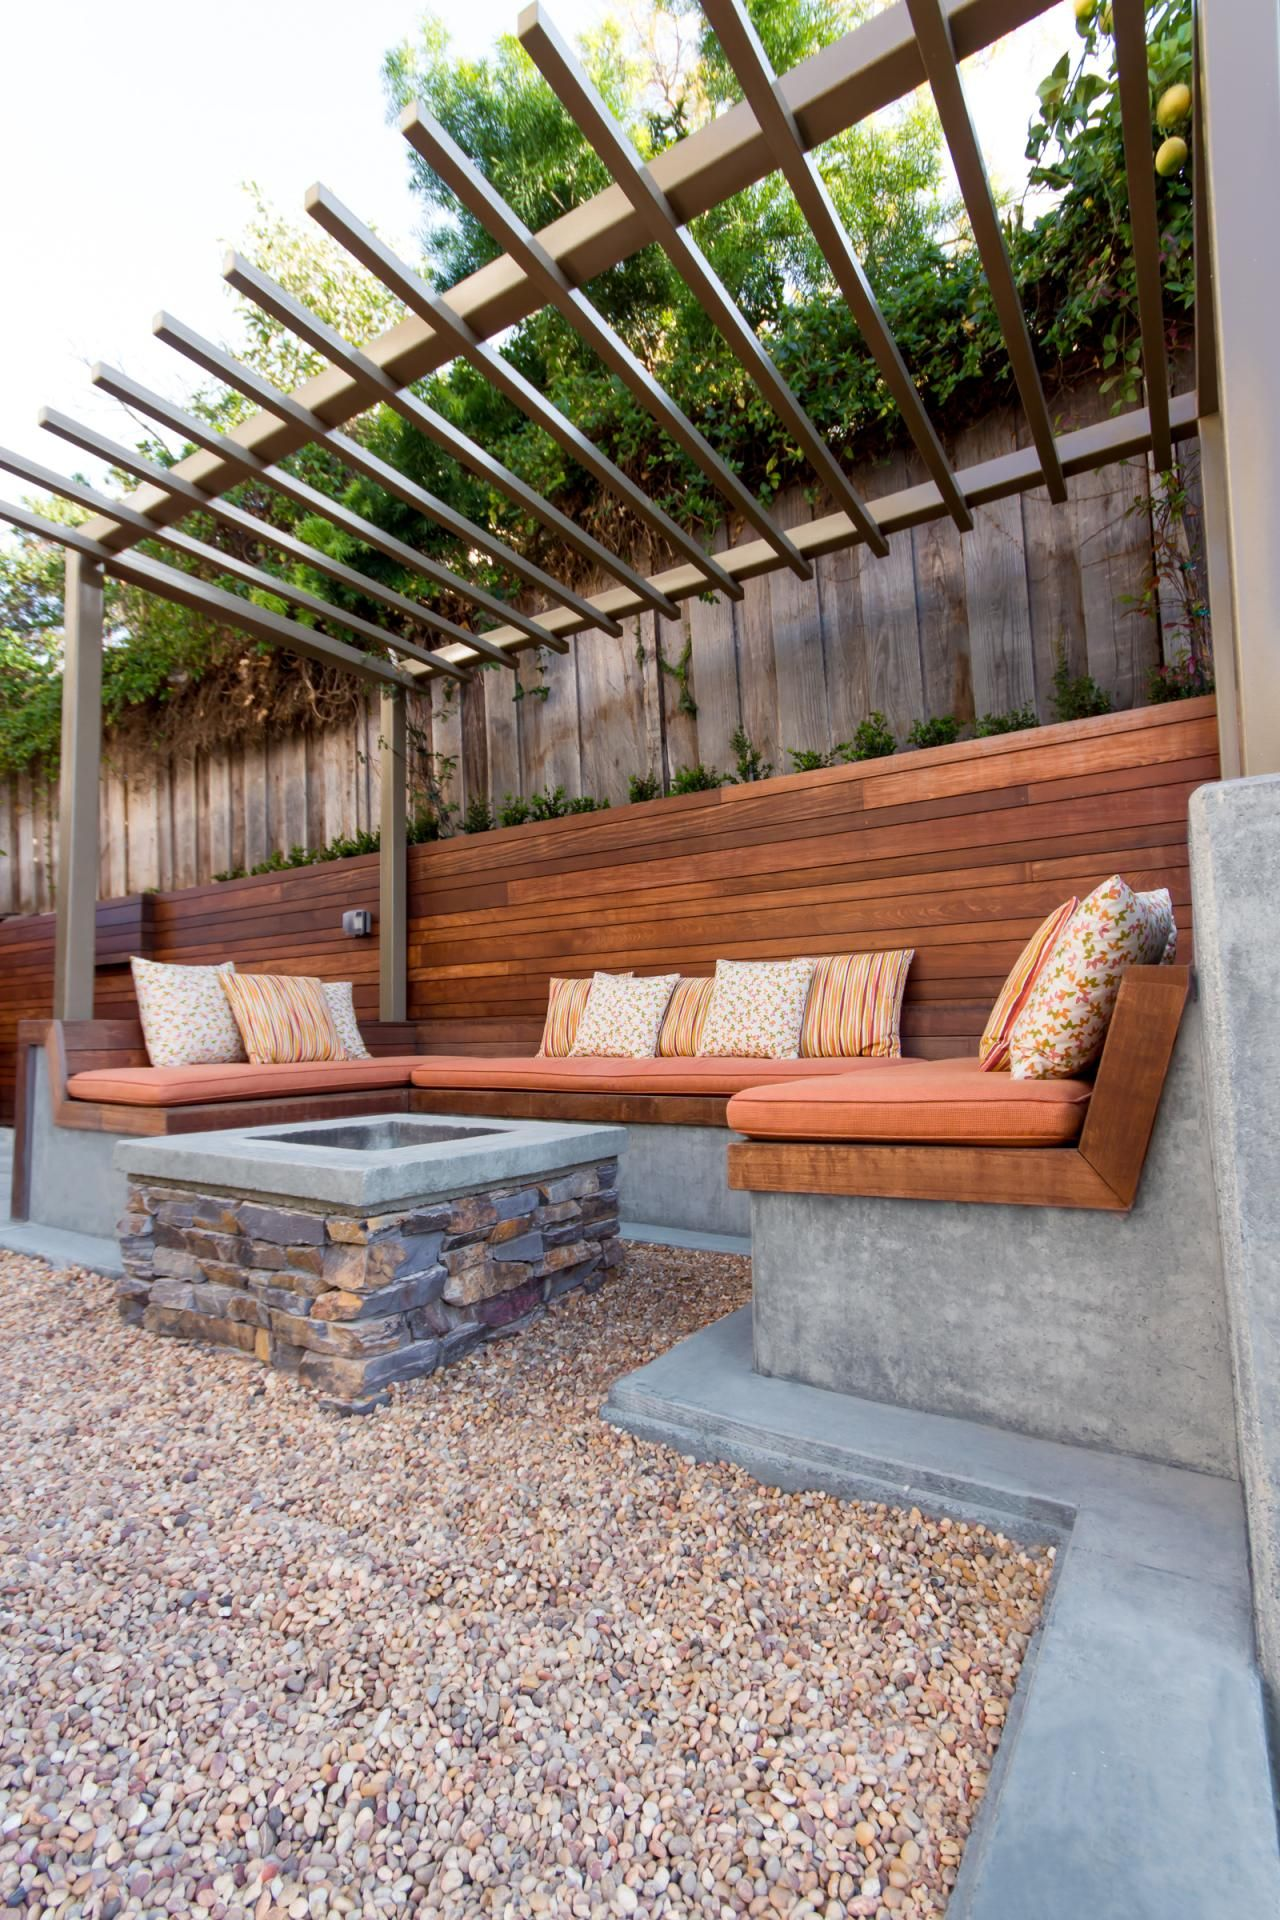 Contemporary Built In Seating With Fire Pit Backyard Seating Area Modern Backyard Landscaping Backyard Seating Modern backyard with fire pit